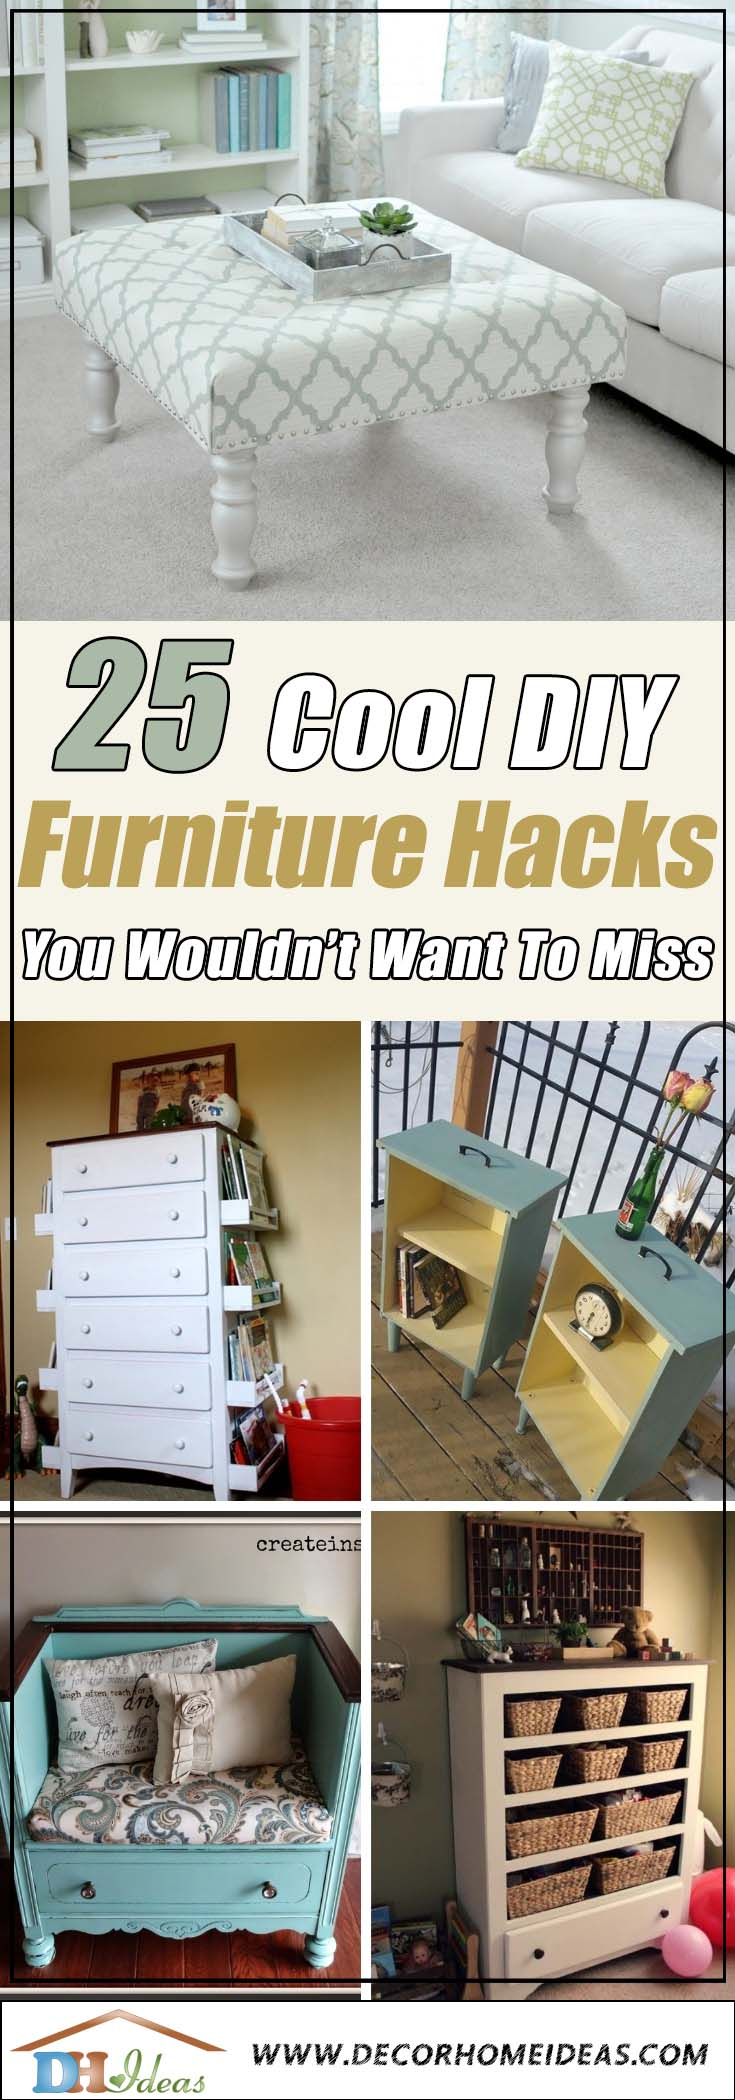 Fantastic Furniture Hacks, Makeover and Repurposed Items #diy #furniture #makeover #repurpose #decorhomeideas